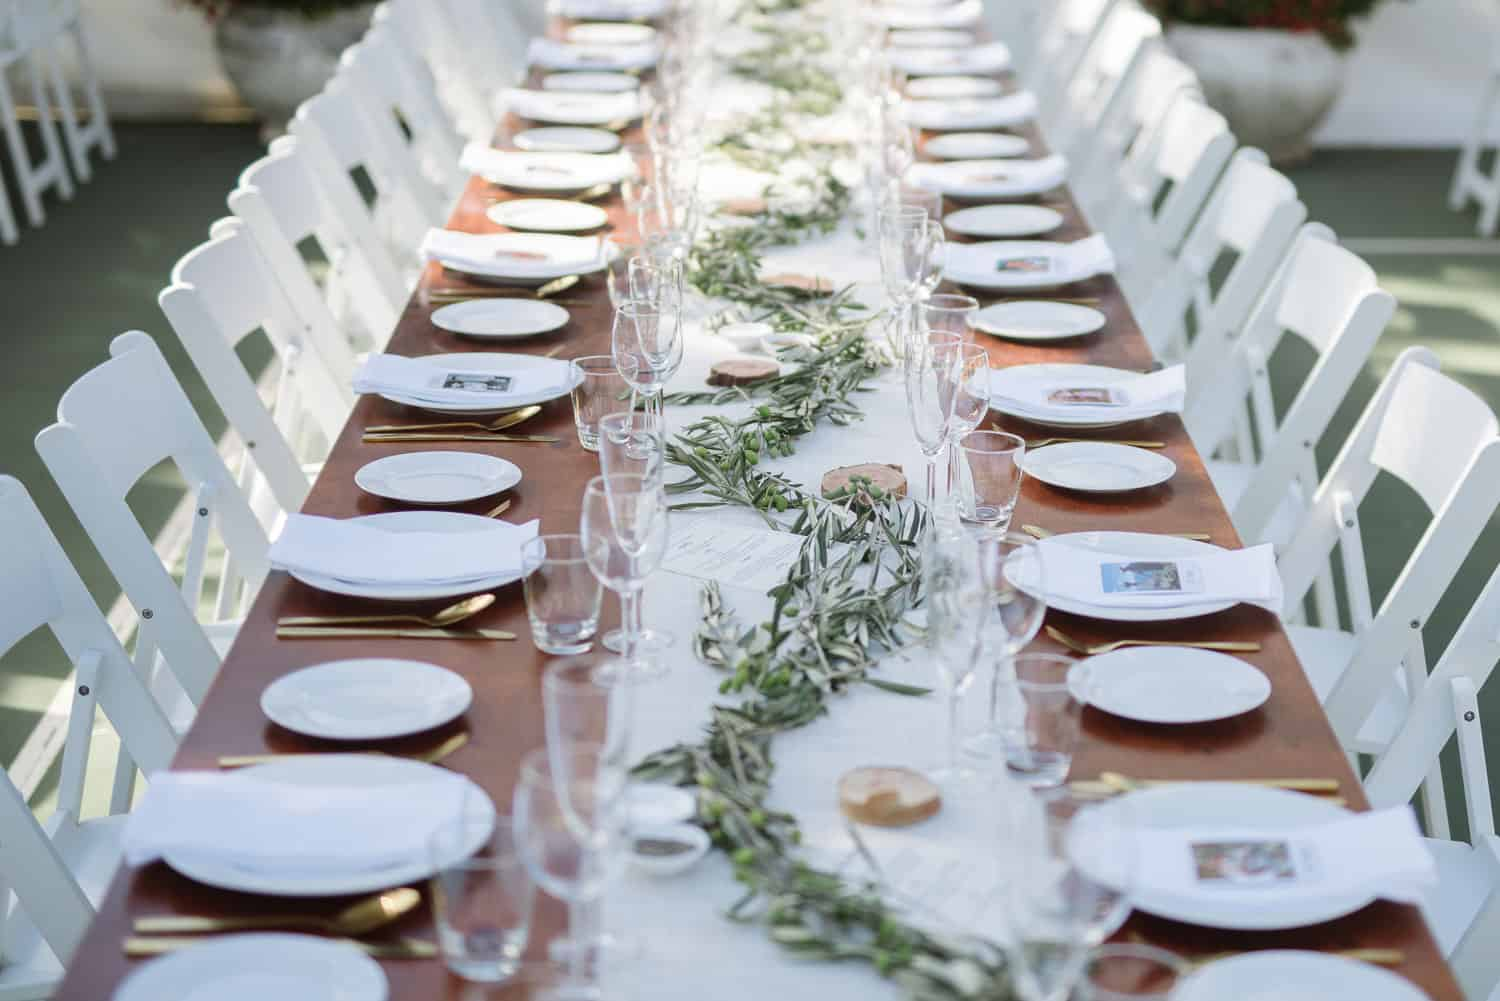 Amazing backyard wedding place-settings